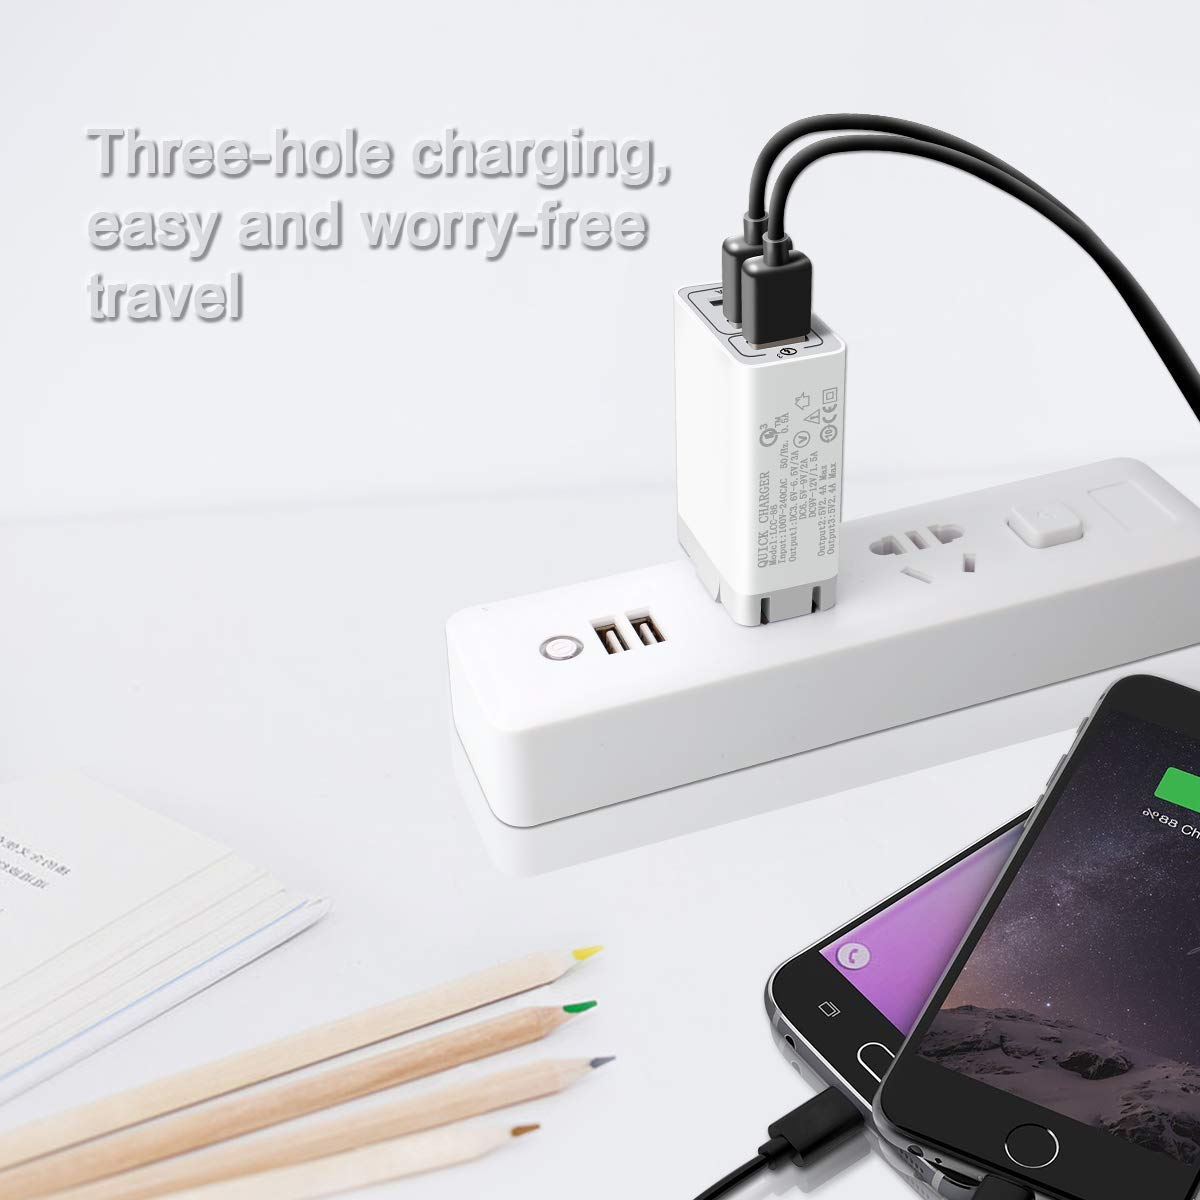 Quick Charge 3.0 Wall Charger, 30W 3 Port Travel Wall Fast Charger Adapter QC3.0 QC2.0 SmartPorts+Detachable Plug for iPhoneX/8/7/6 Samsung s9S8/S7,Note8/7,LG,iPd,Sony,HTC (White)